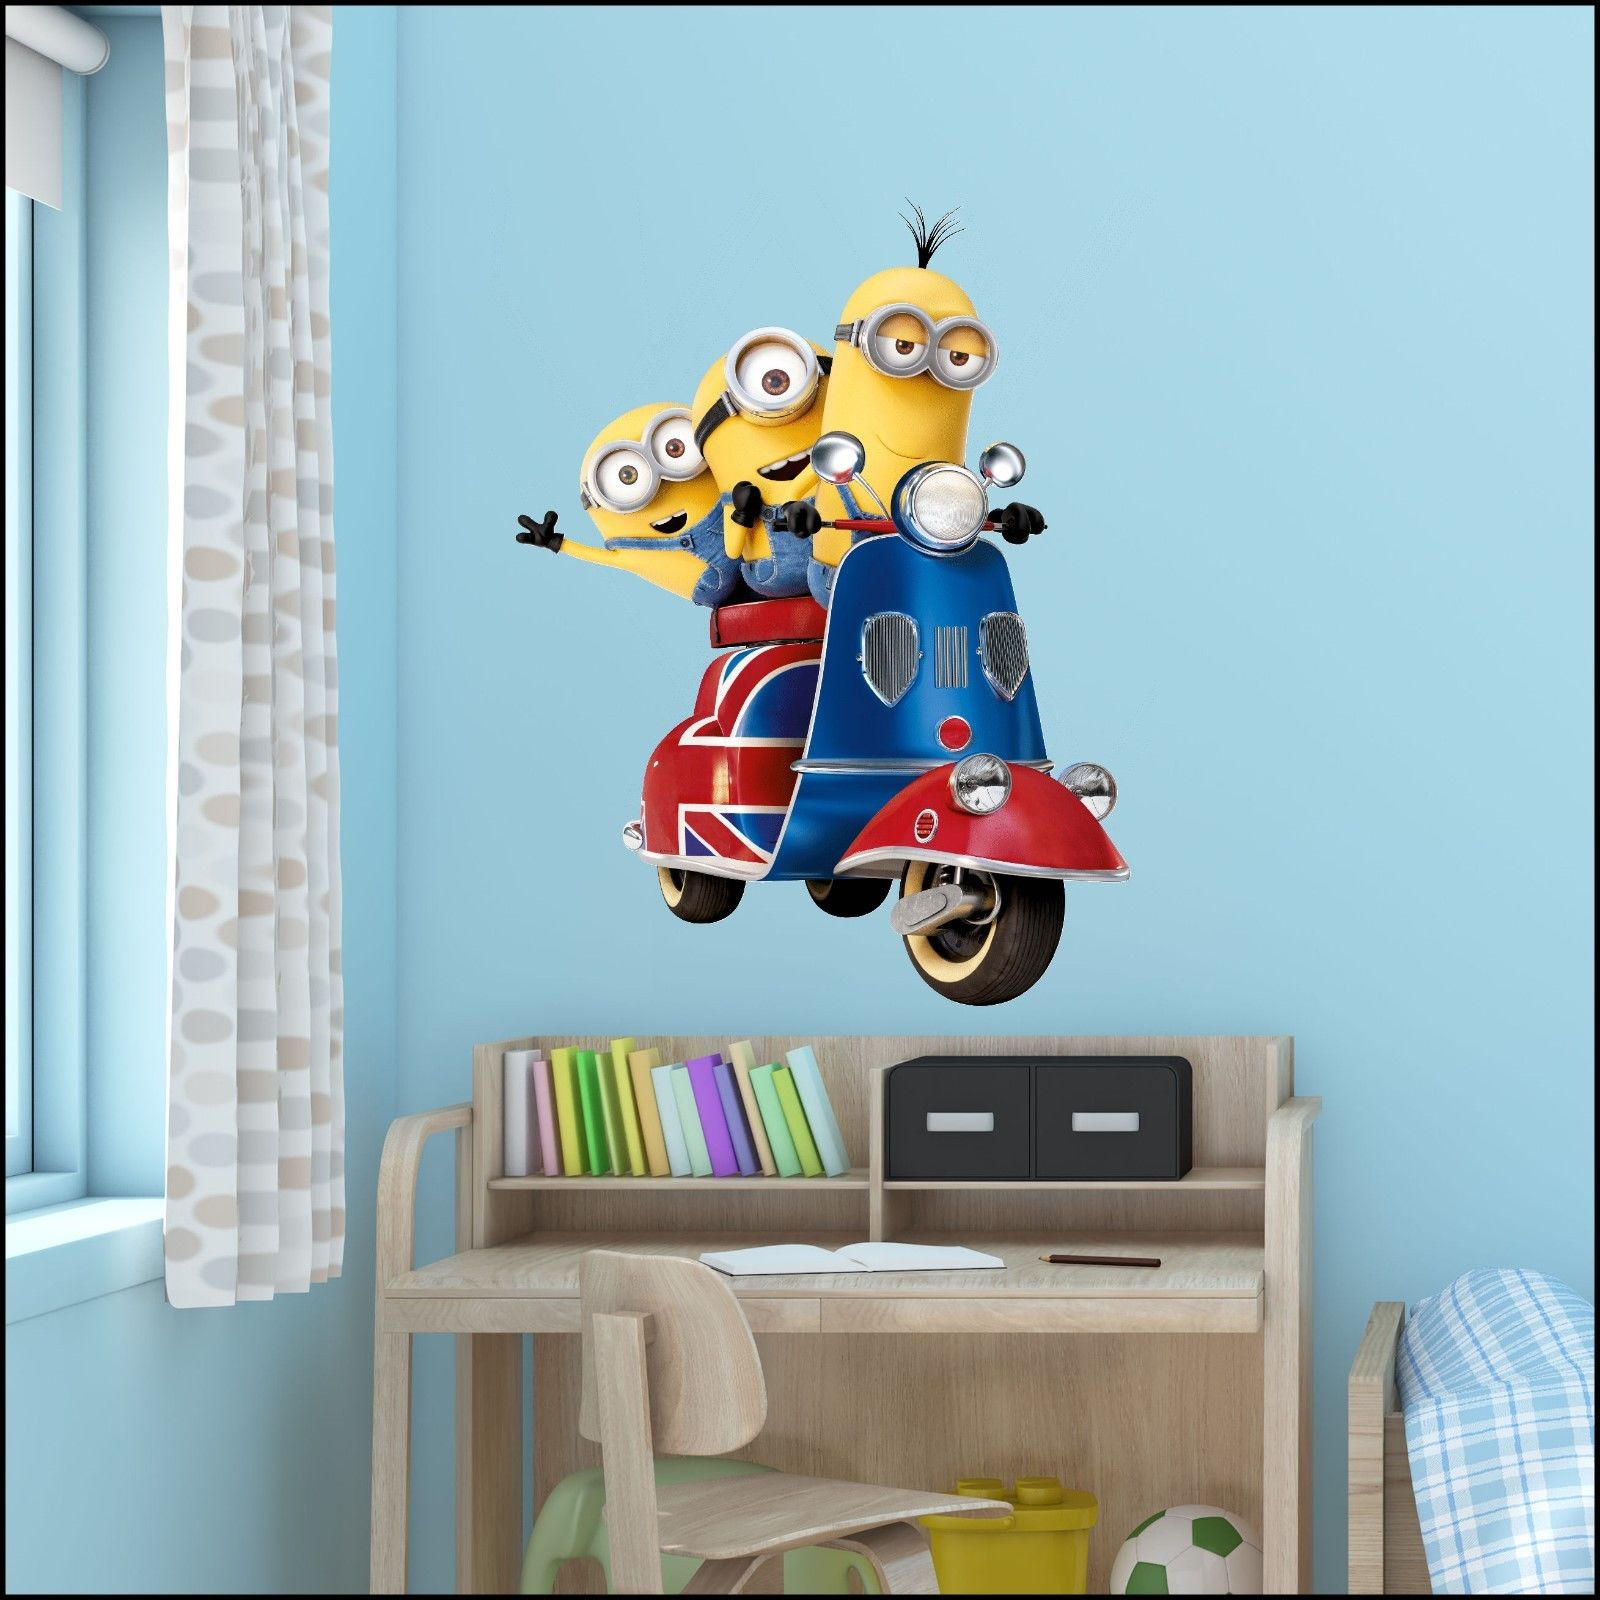 Large Despicable Me 3 Minions On Uk Scooter Vinyl Wall Art Sticker